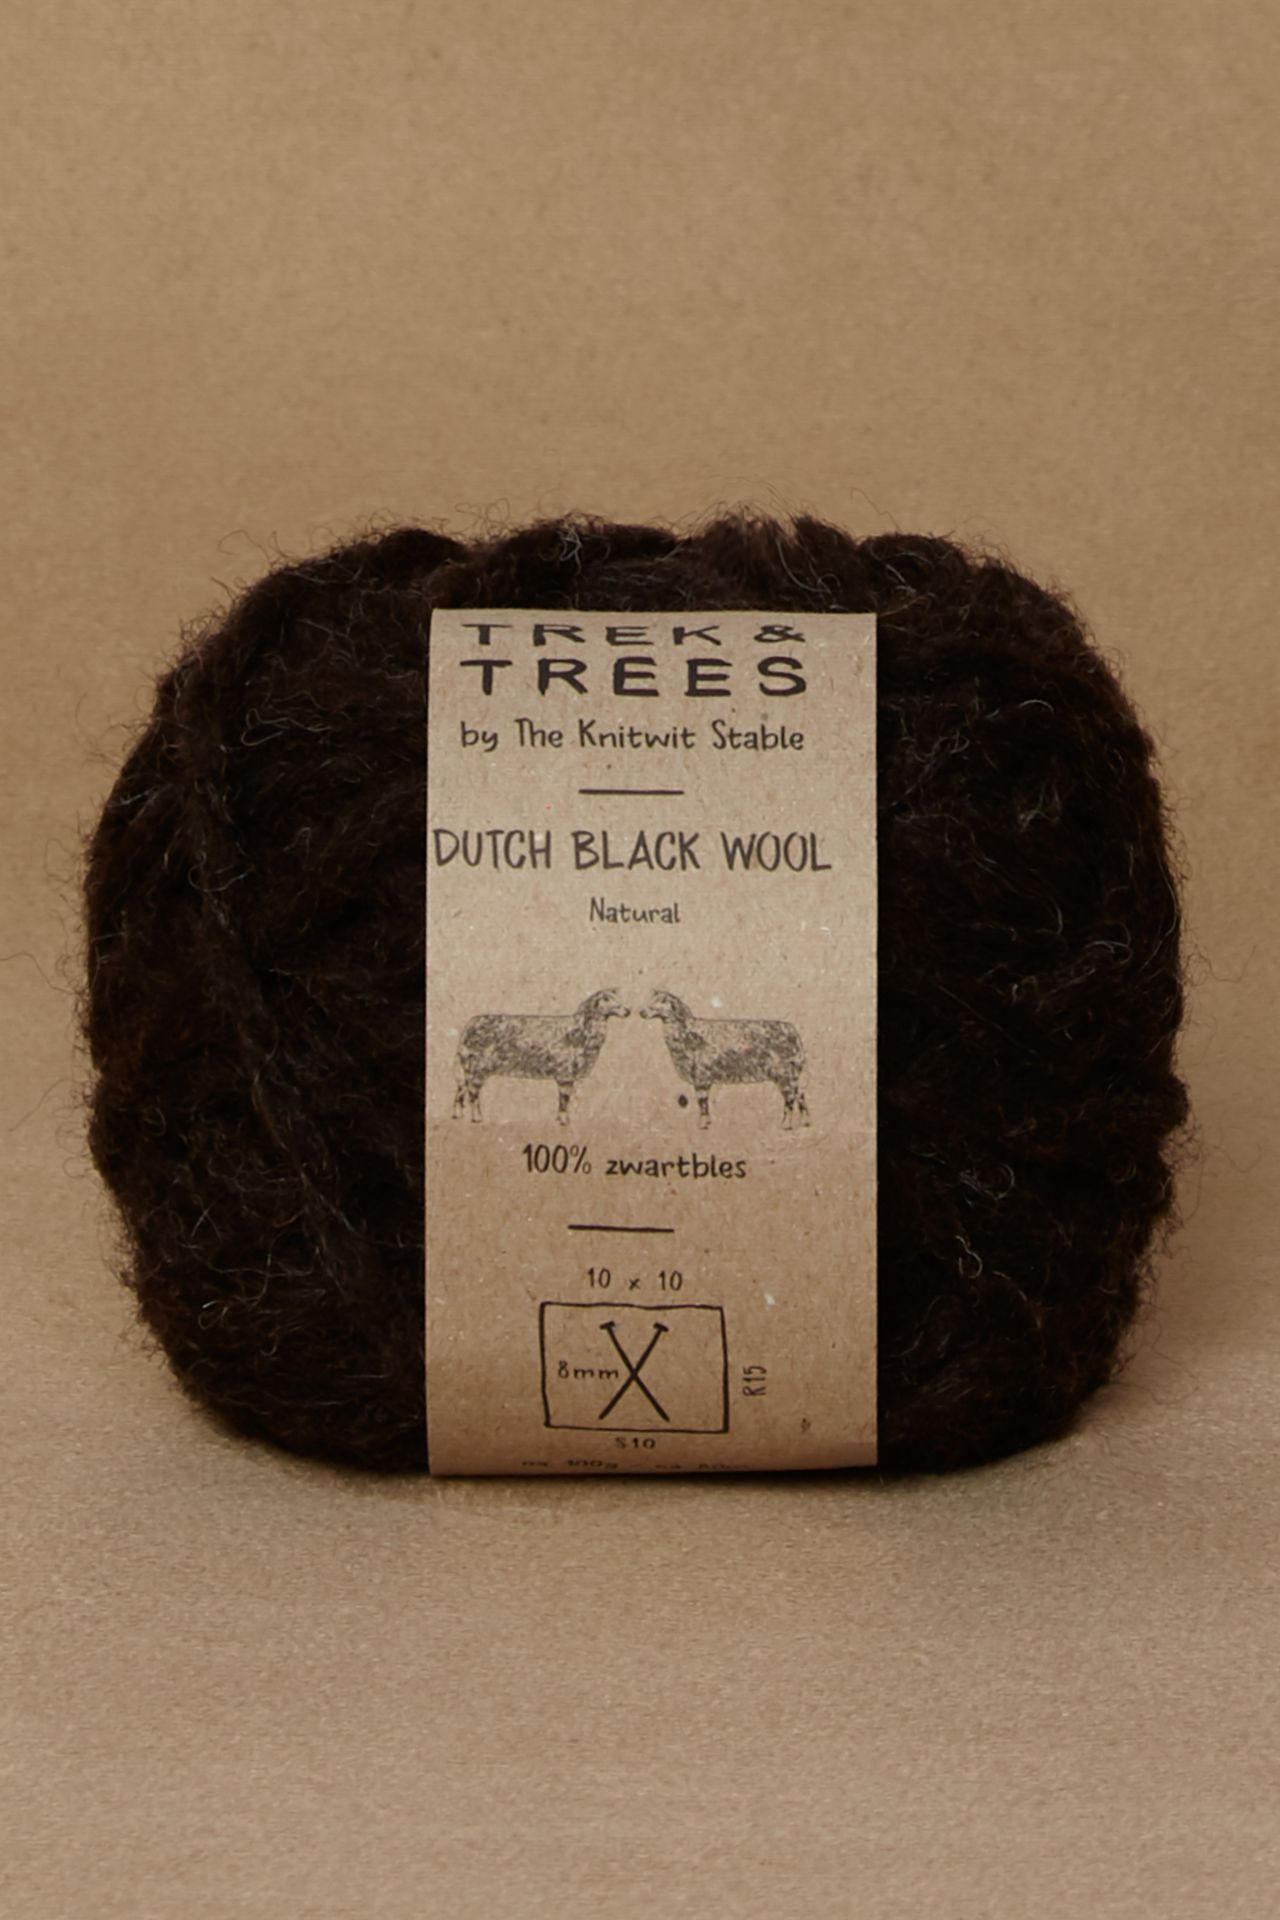 Dutch black wool packshot.